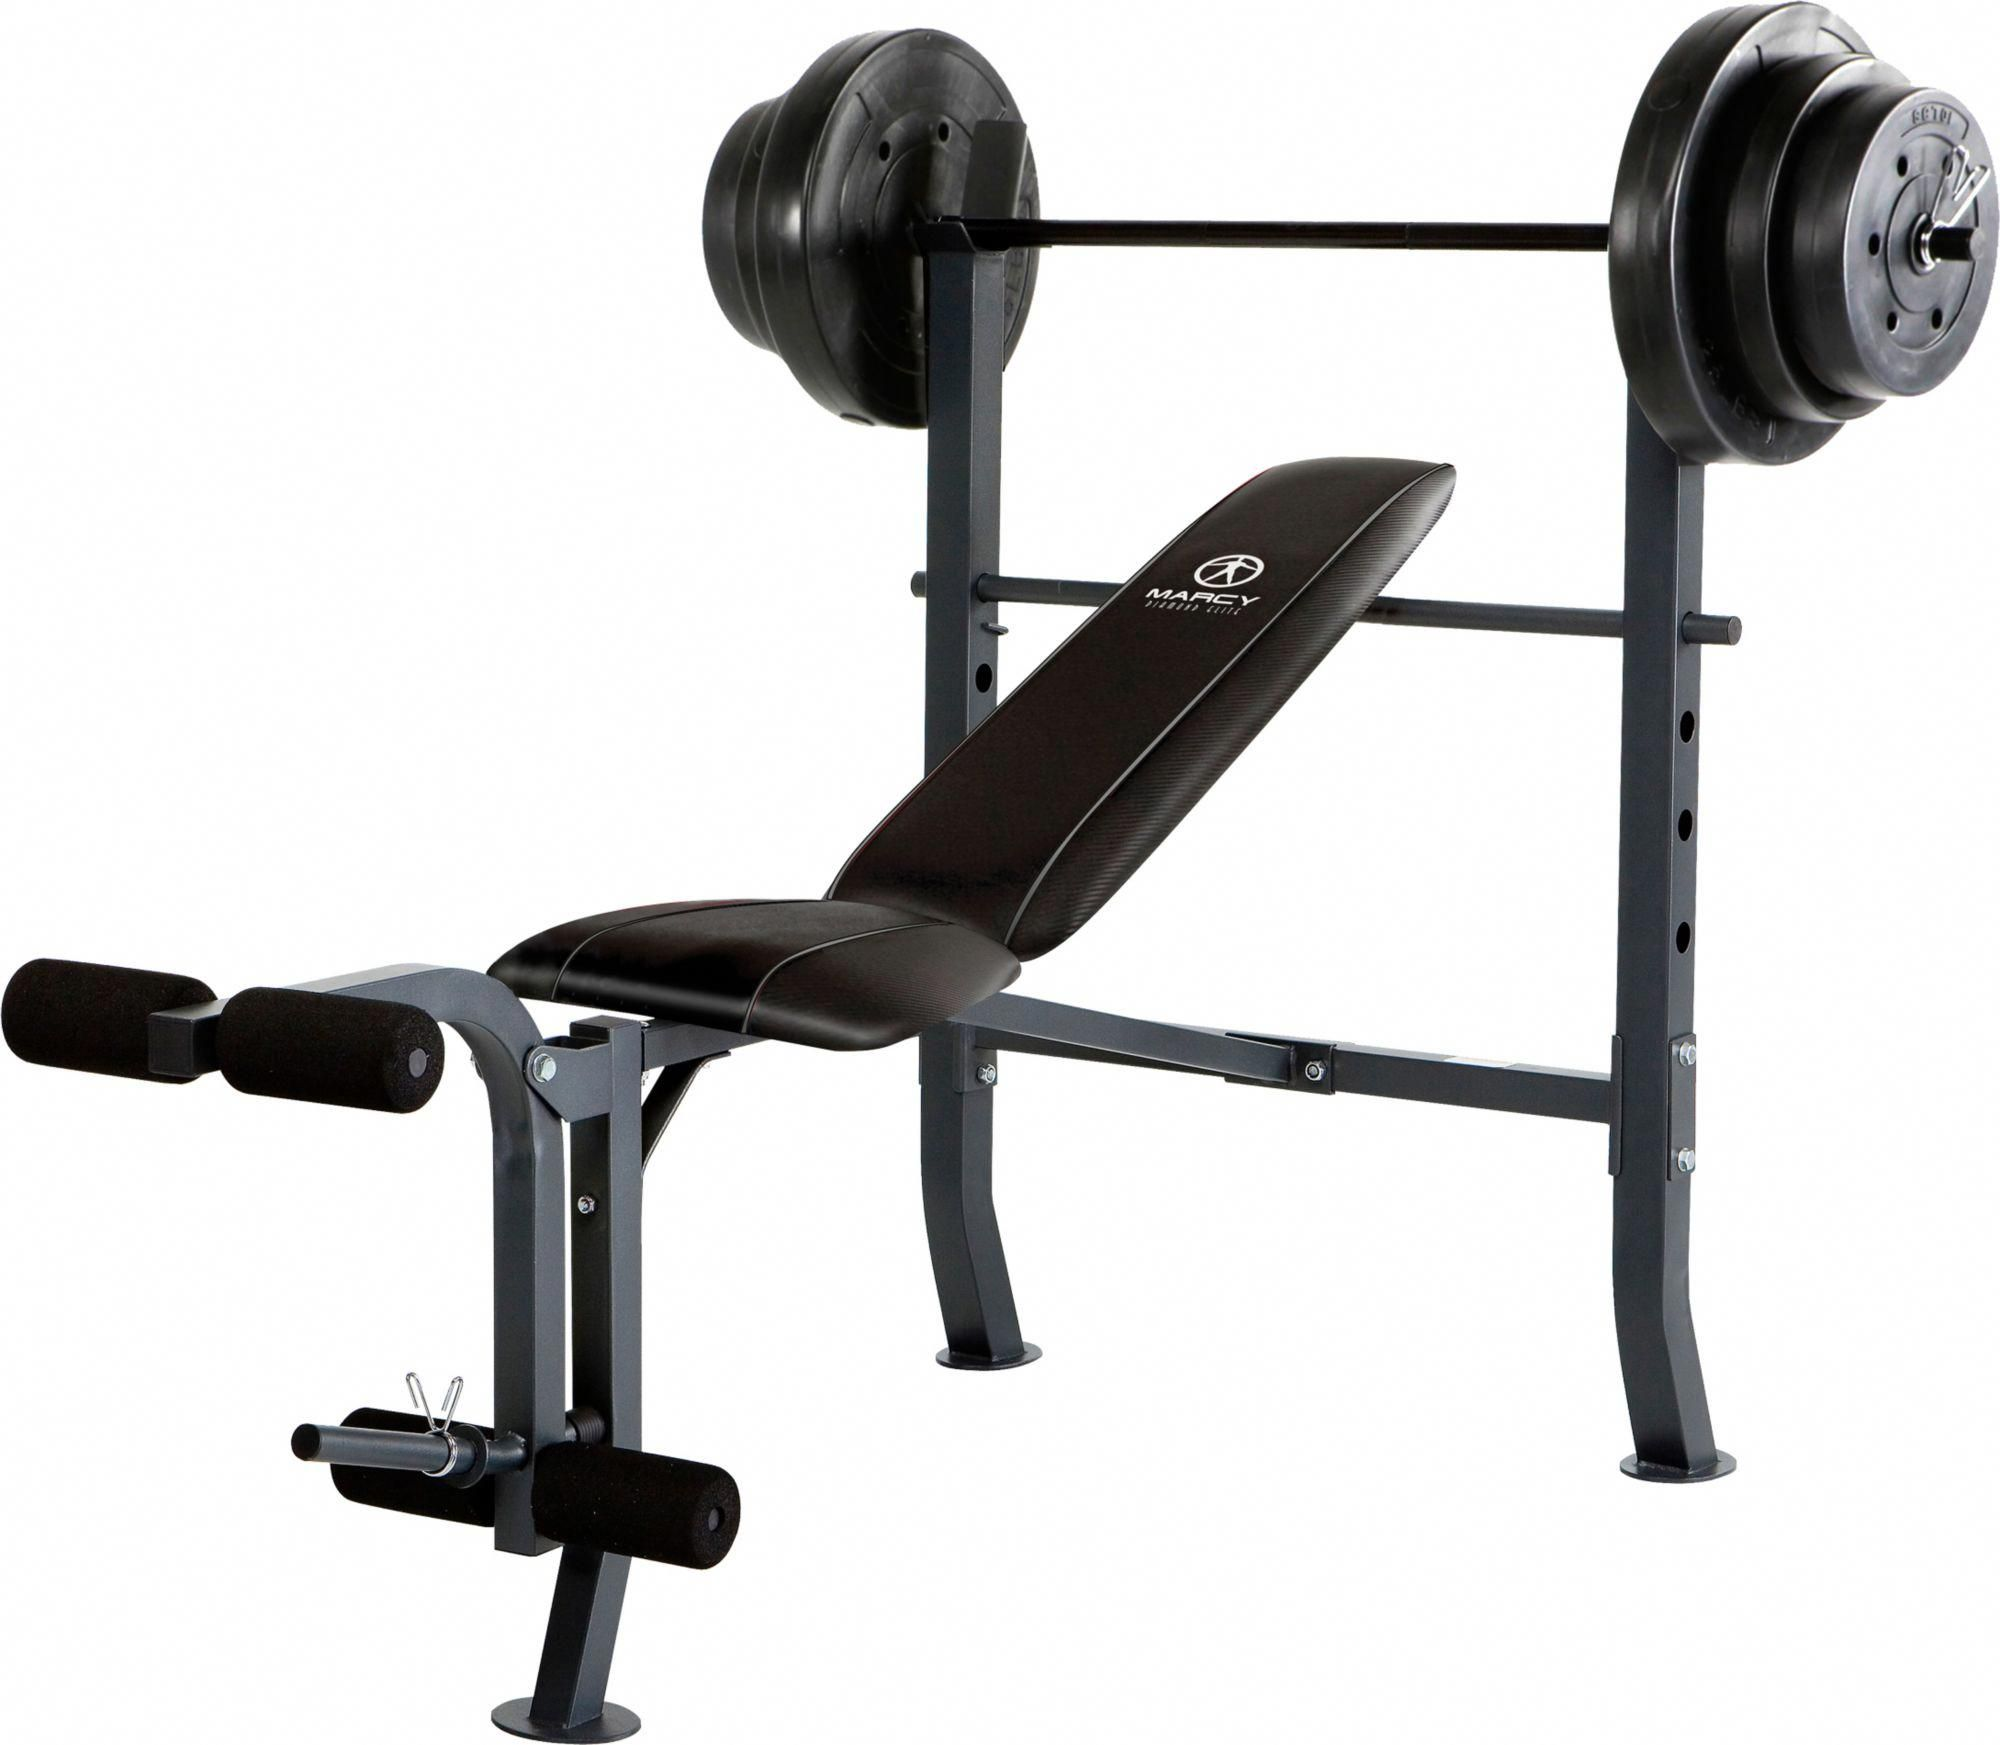 Interested In Finding More About Incline Bench Press Then Read On Inclinebenchpress Weight Benches Weight Bench Set Weight Set